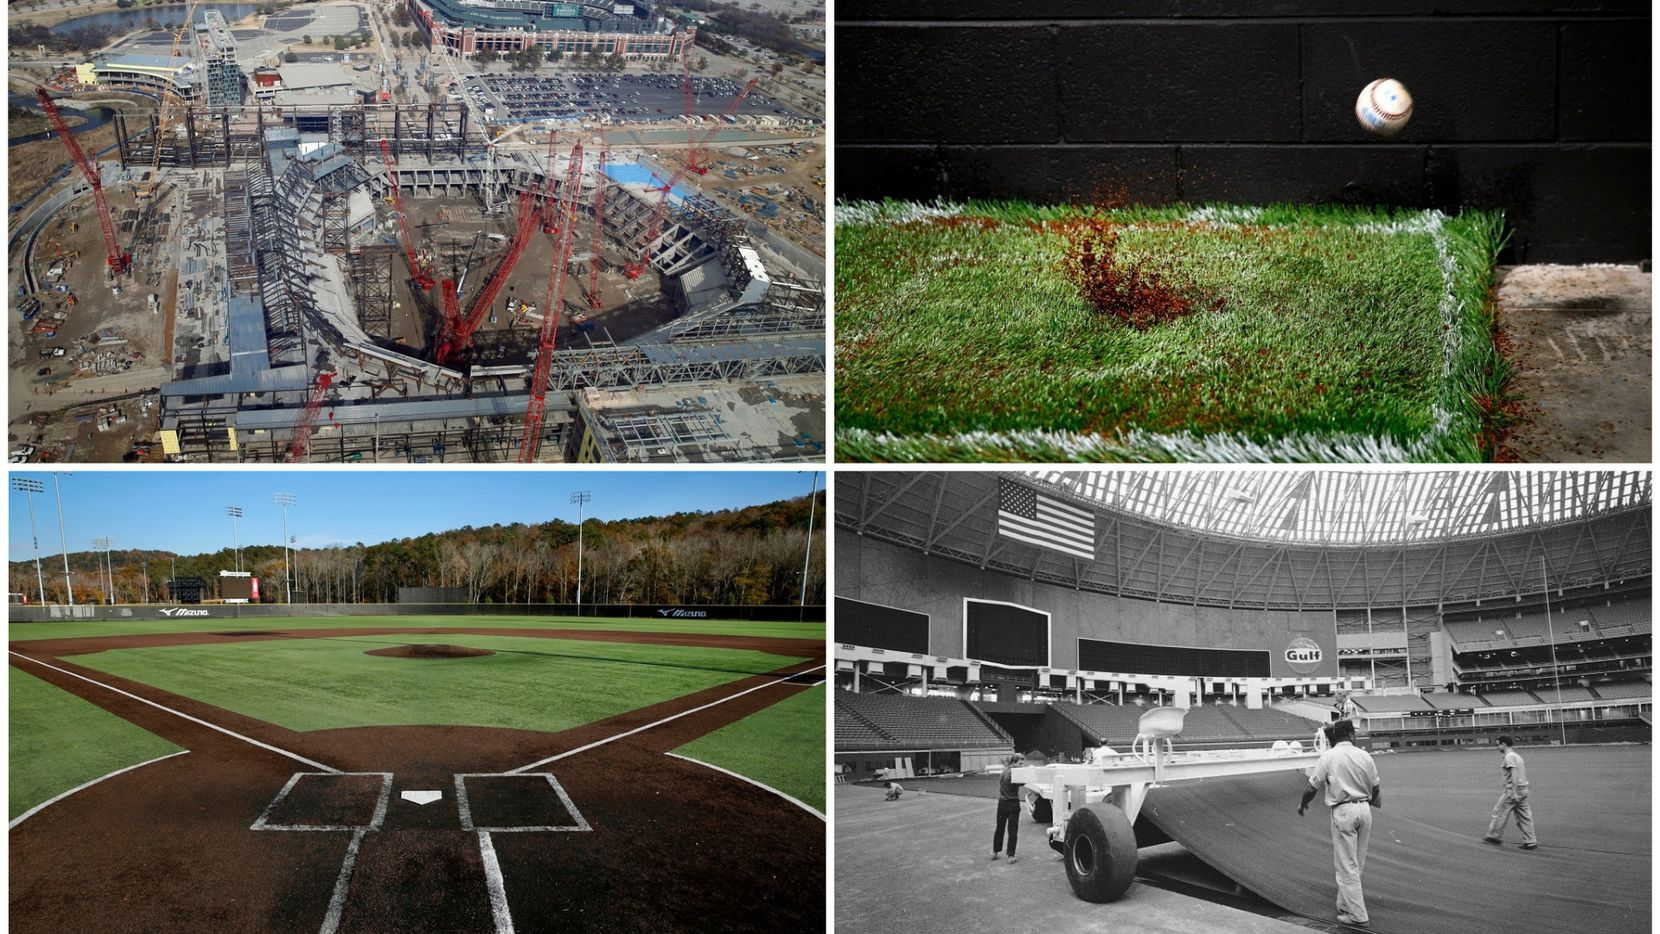 The Texas Rangers are considering going with an artificial turf surface for their new ballpark because of necessity. The technology has come a long way, as Shaw Sports Turf has shown. (Staff and file photos, clockwise from top left: Vernon Bryant, Tom Fox, the Associated Press and Tom Fox)